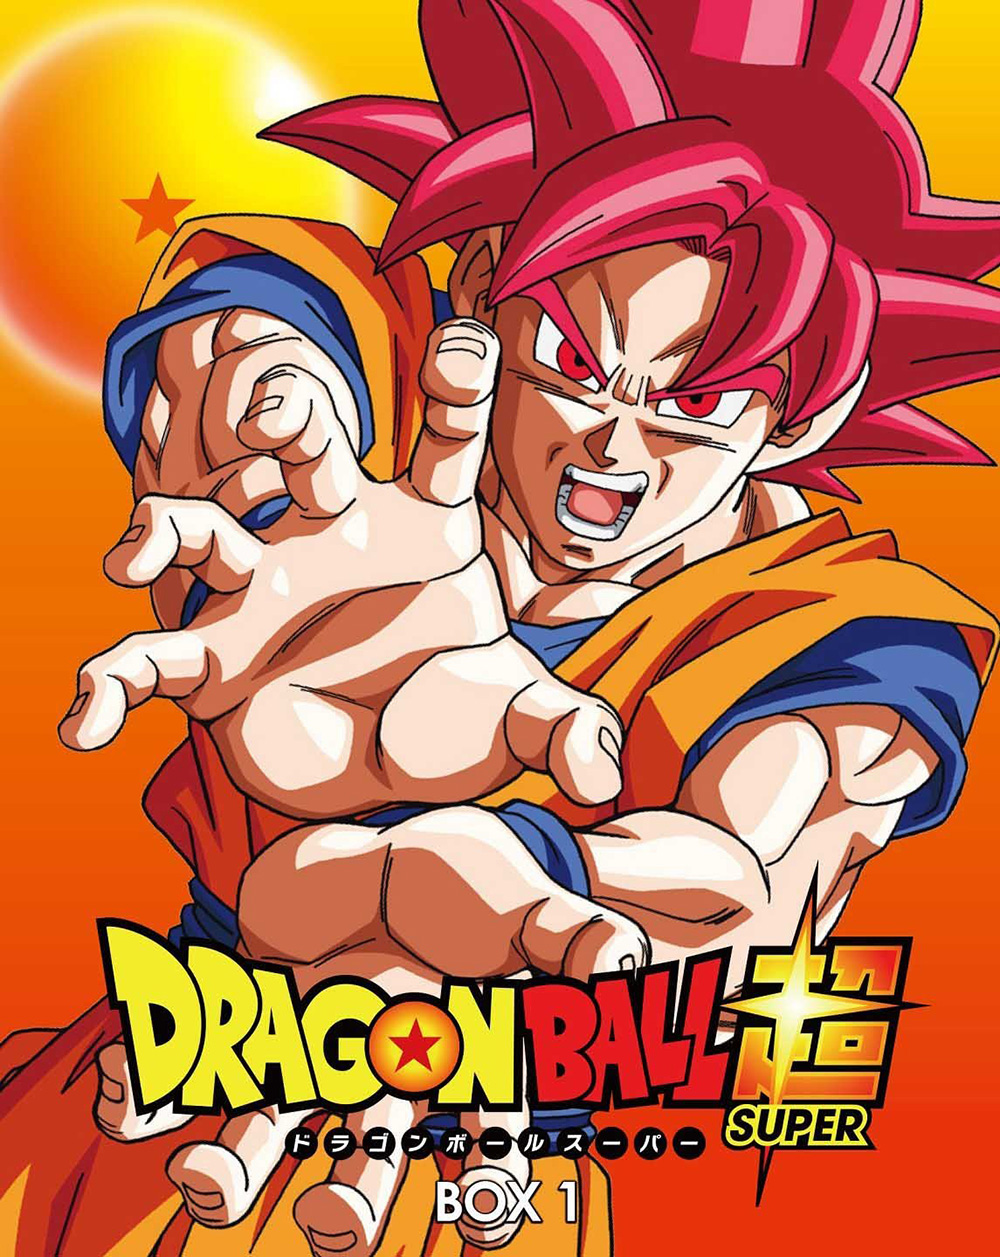 Dragon-Ball-Super-Blu-ray-Vol-1-Cover